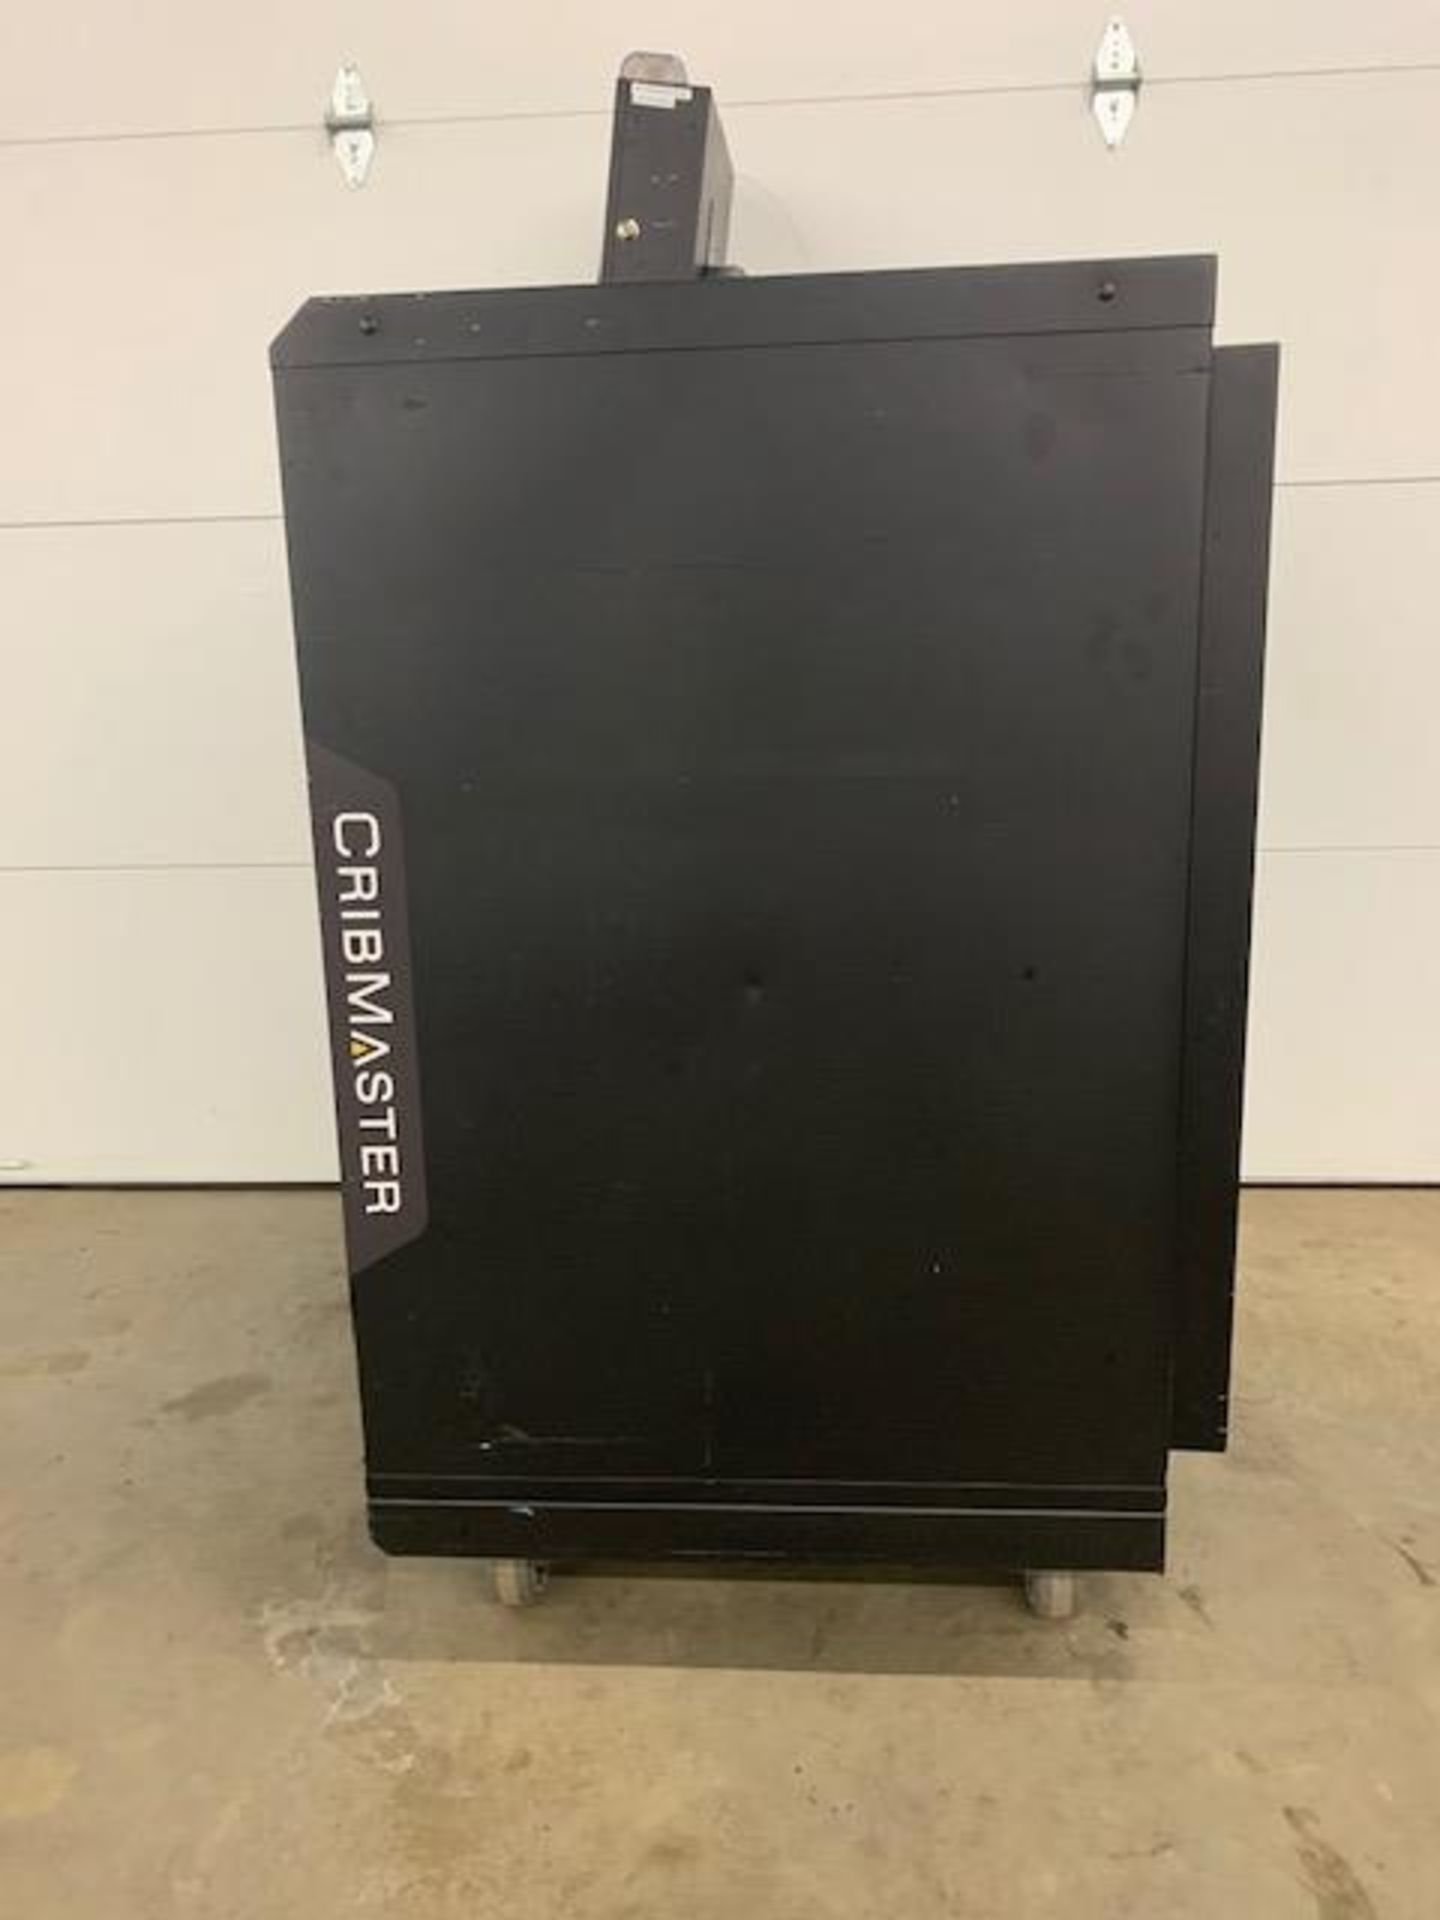 Cribmaster AccuDrawer - Image 8 of 9